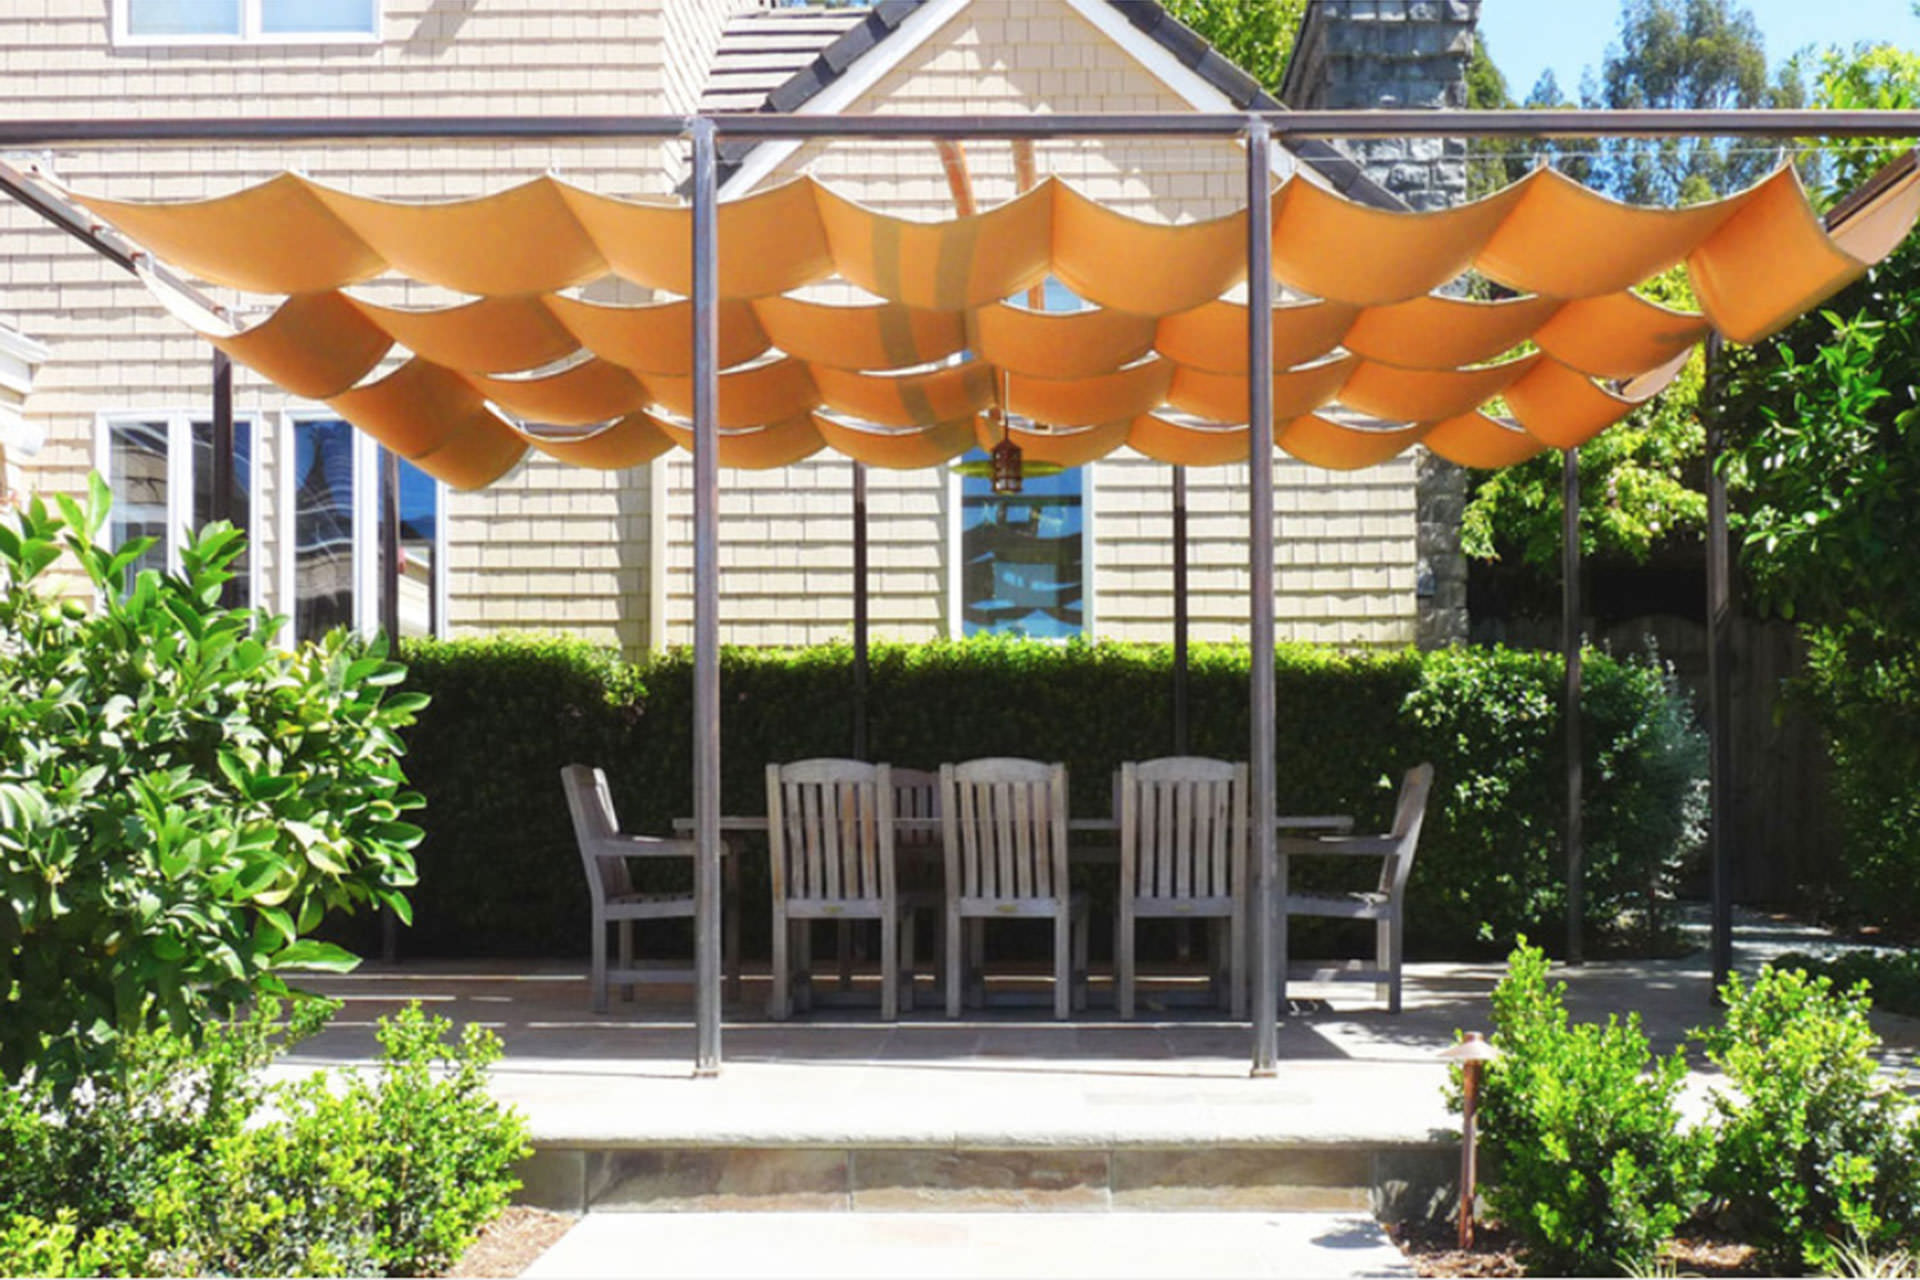 Backyard Awning Design : Choosing a Retractable Canopy Track Single, Multi, Cable, or Roll